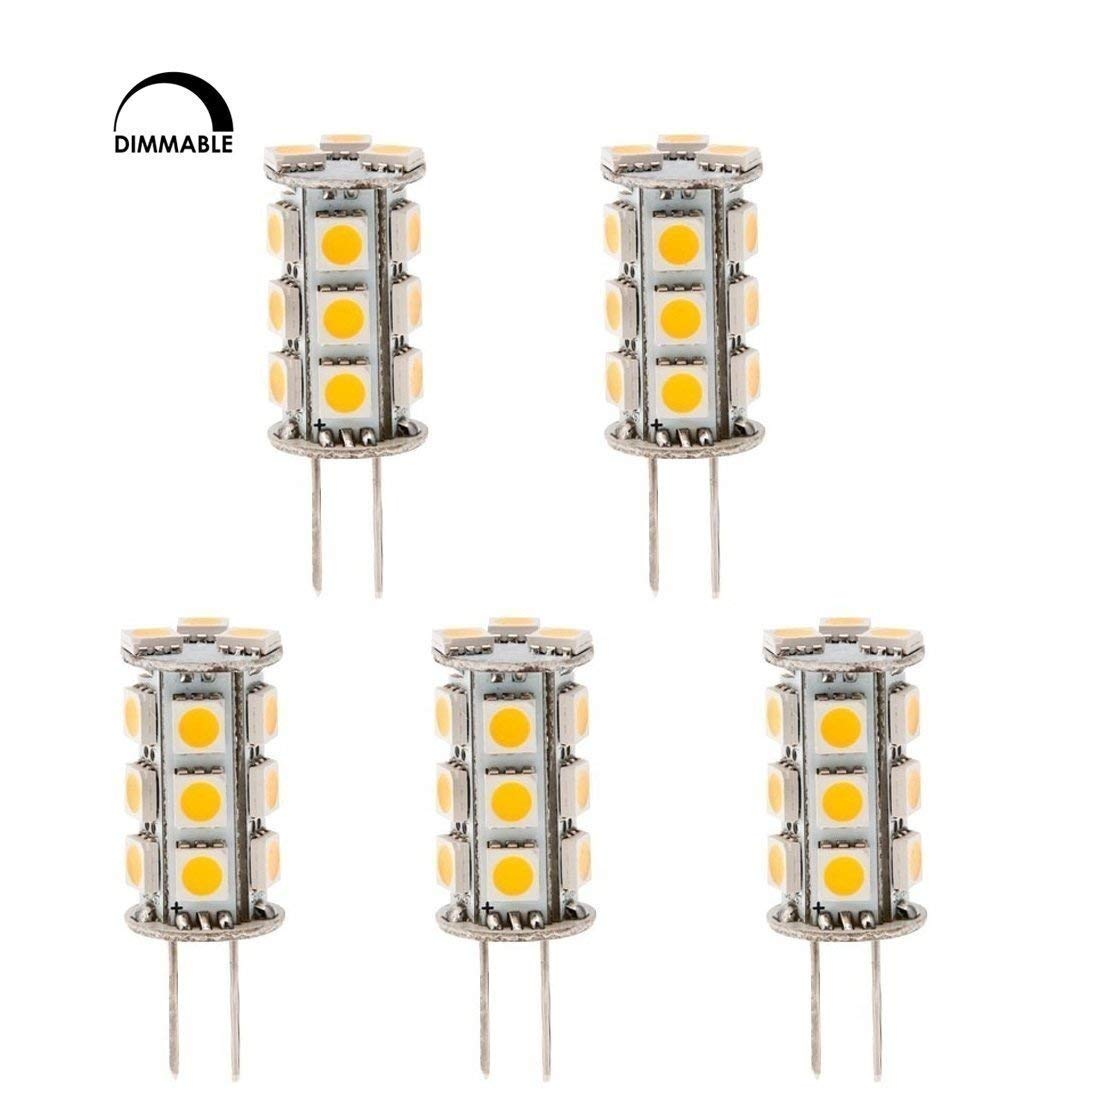 HERO-LED  DTG6-18T-DW Dimmable Back Pin Tower GY6.35 Low Voltage 12V LED Halogen Replacement Bulb 20-25W Equal 2.5W Daylight White 5000K 5-Pack